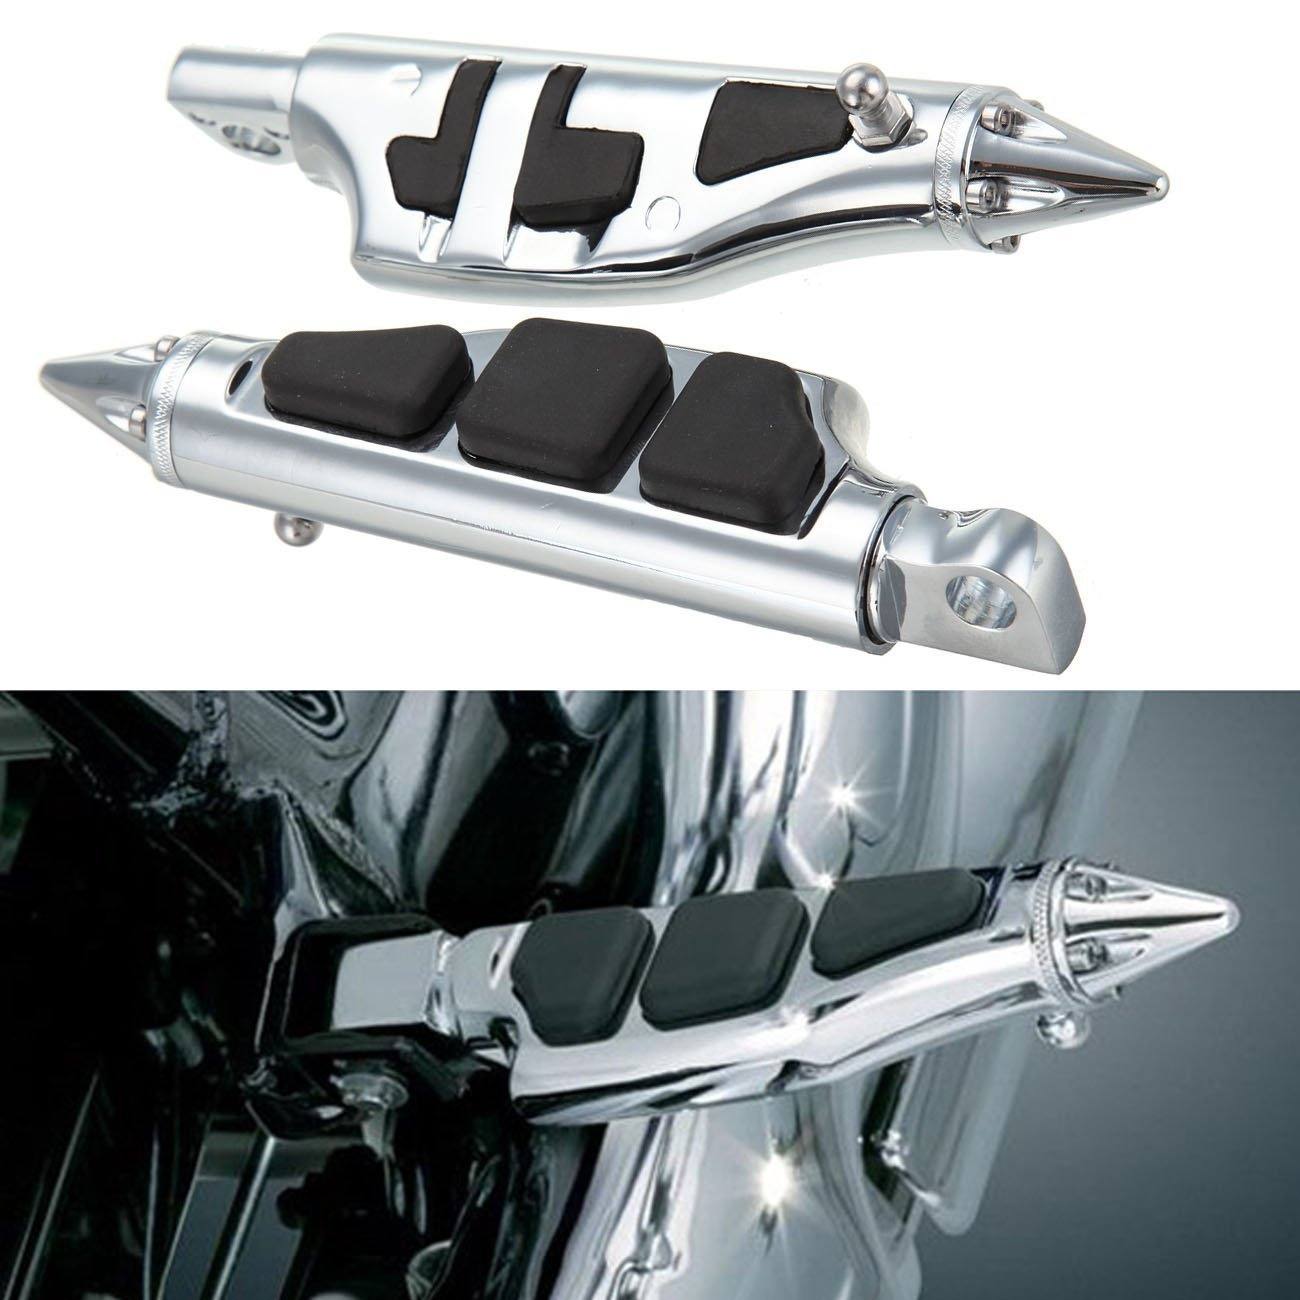 DLLL Universal 2X Motorcycle Rear Passenger Foot Rest Pegs Footpegs Footrest for Harley Softail Sportster Dyna Glide Fat Boy Highway Metric Harley Honda Suzuki Yamaha Custom Cruiser